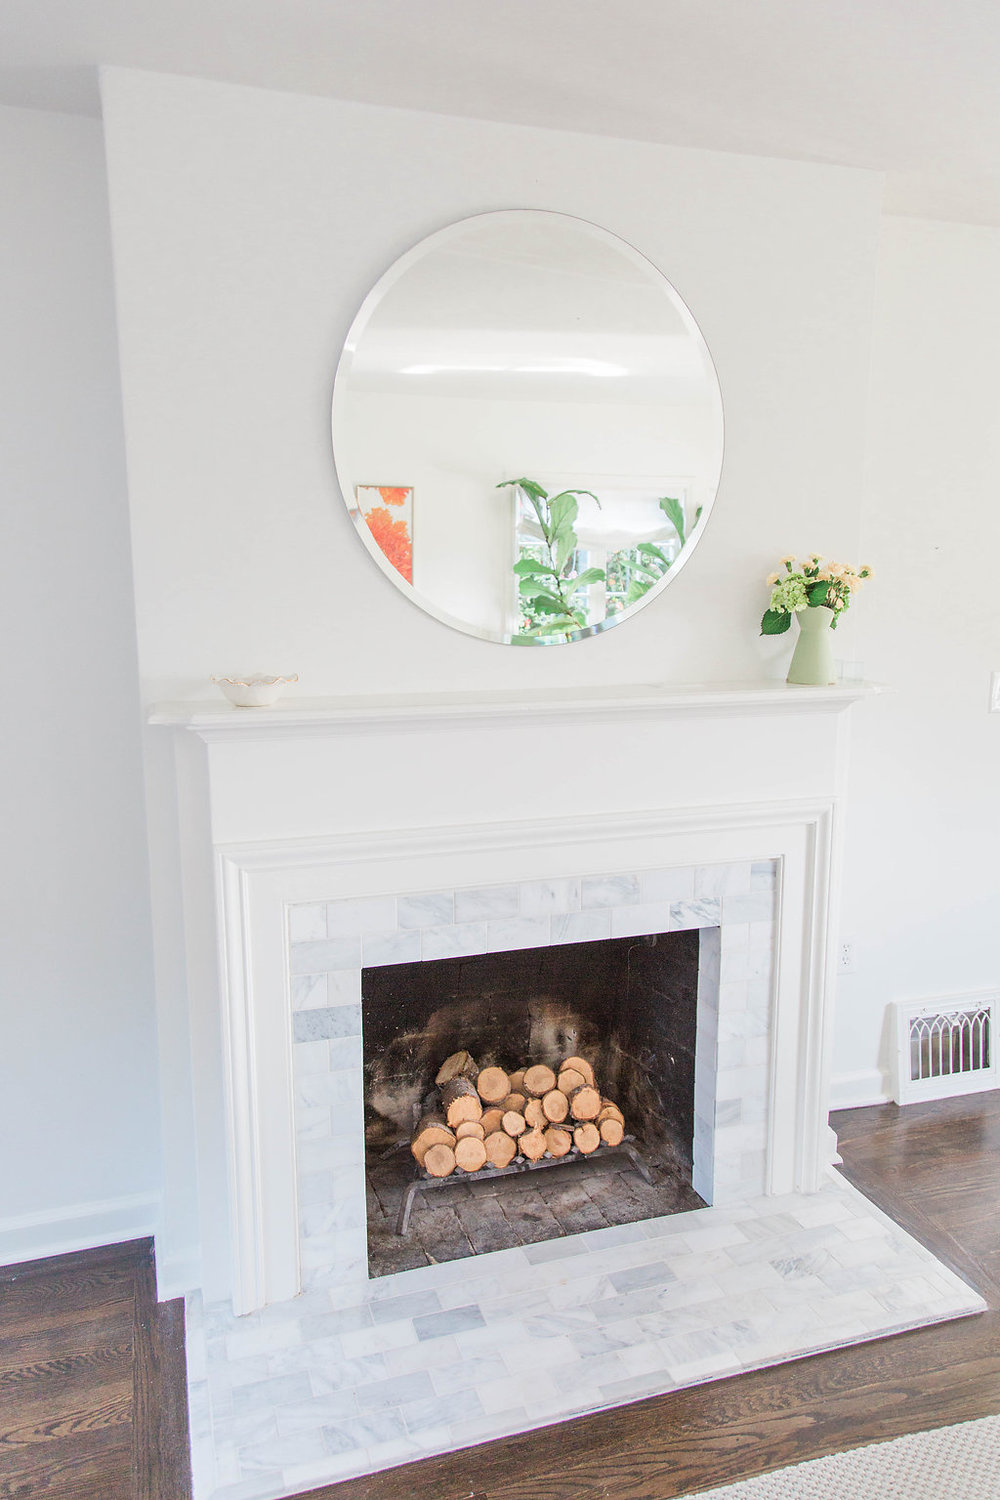 Hydrangeas from the yard | Interior Design | Dreamy White Lifestyle | Living Room Goals | Dream White Home | Dream Home Tour | White House | Stunning Kitchen | As Featured in Style Me Pretty | SMP Living | Gorgeous Living Room Decor | How to Style Your Living Room | Marble Fireplace